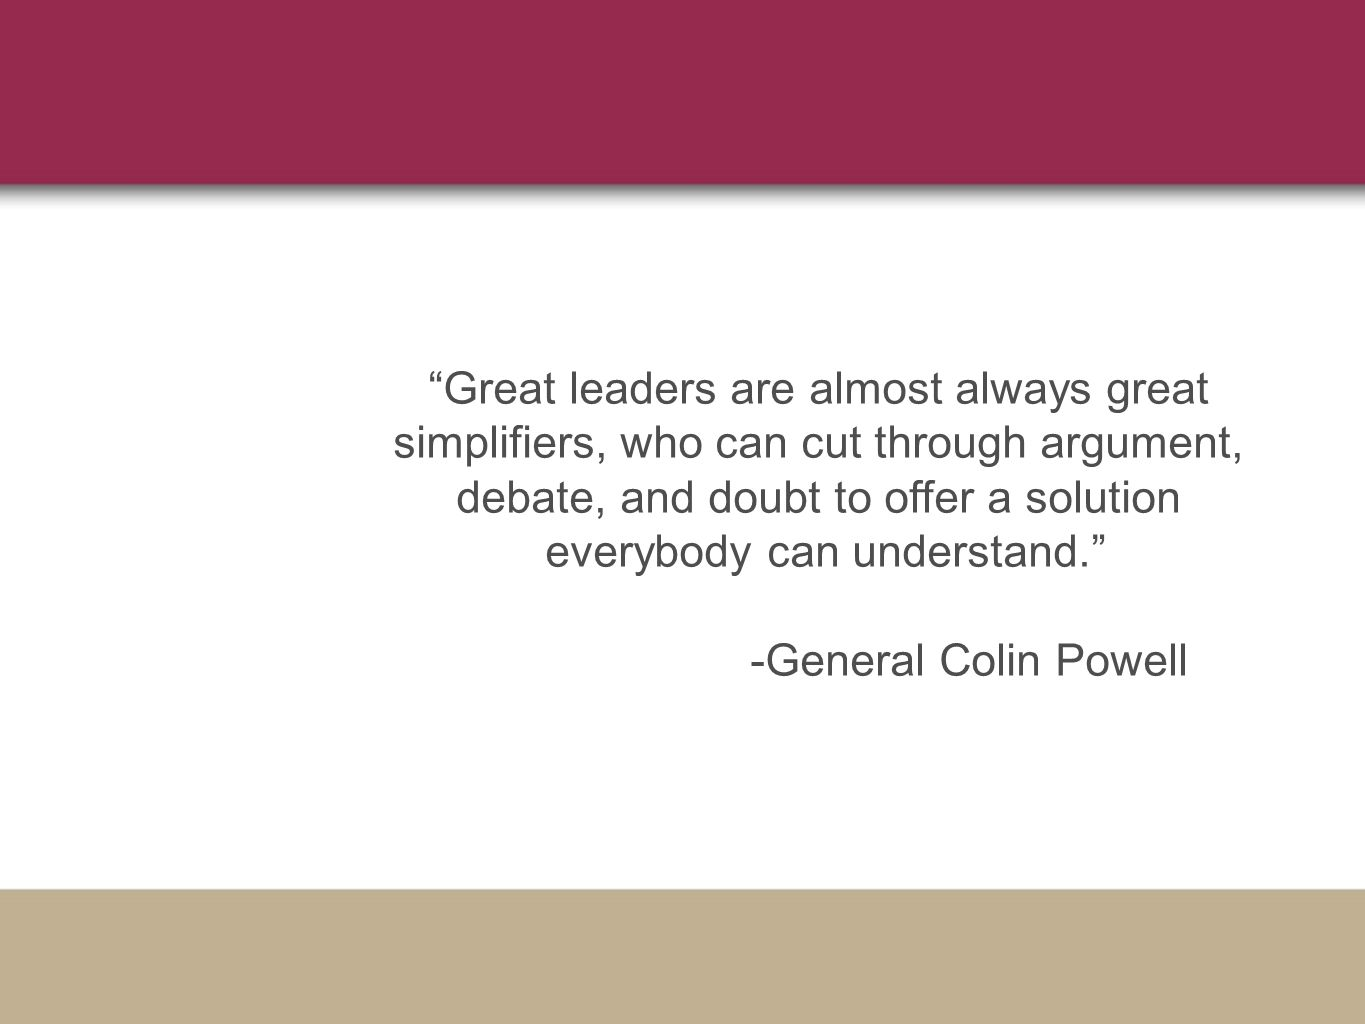 Great leaders are almost always great